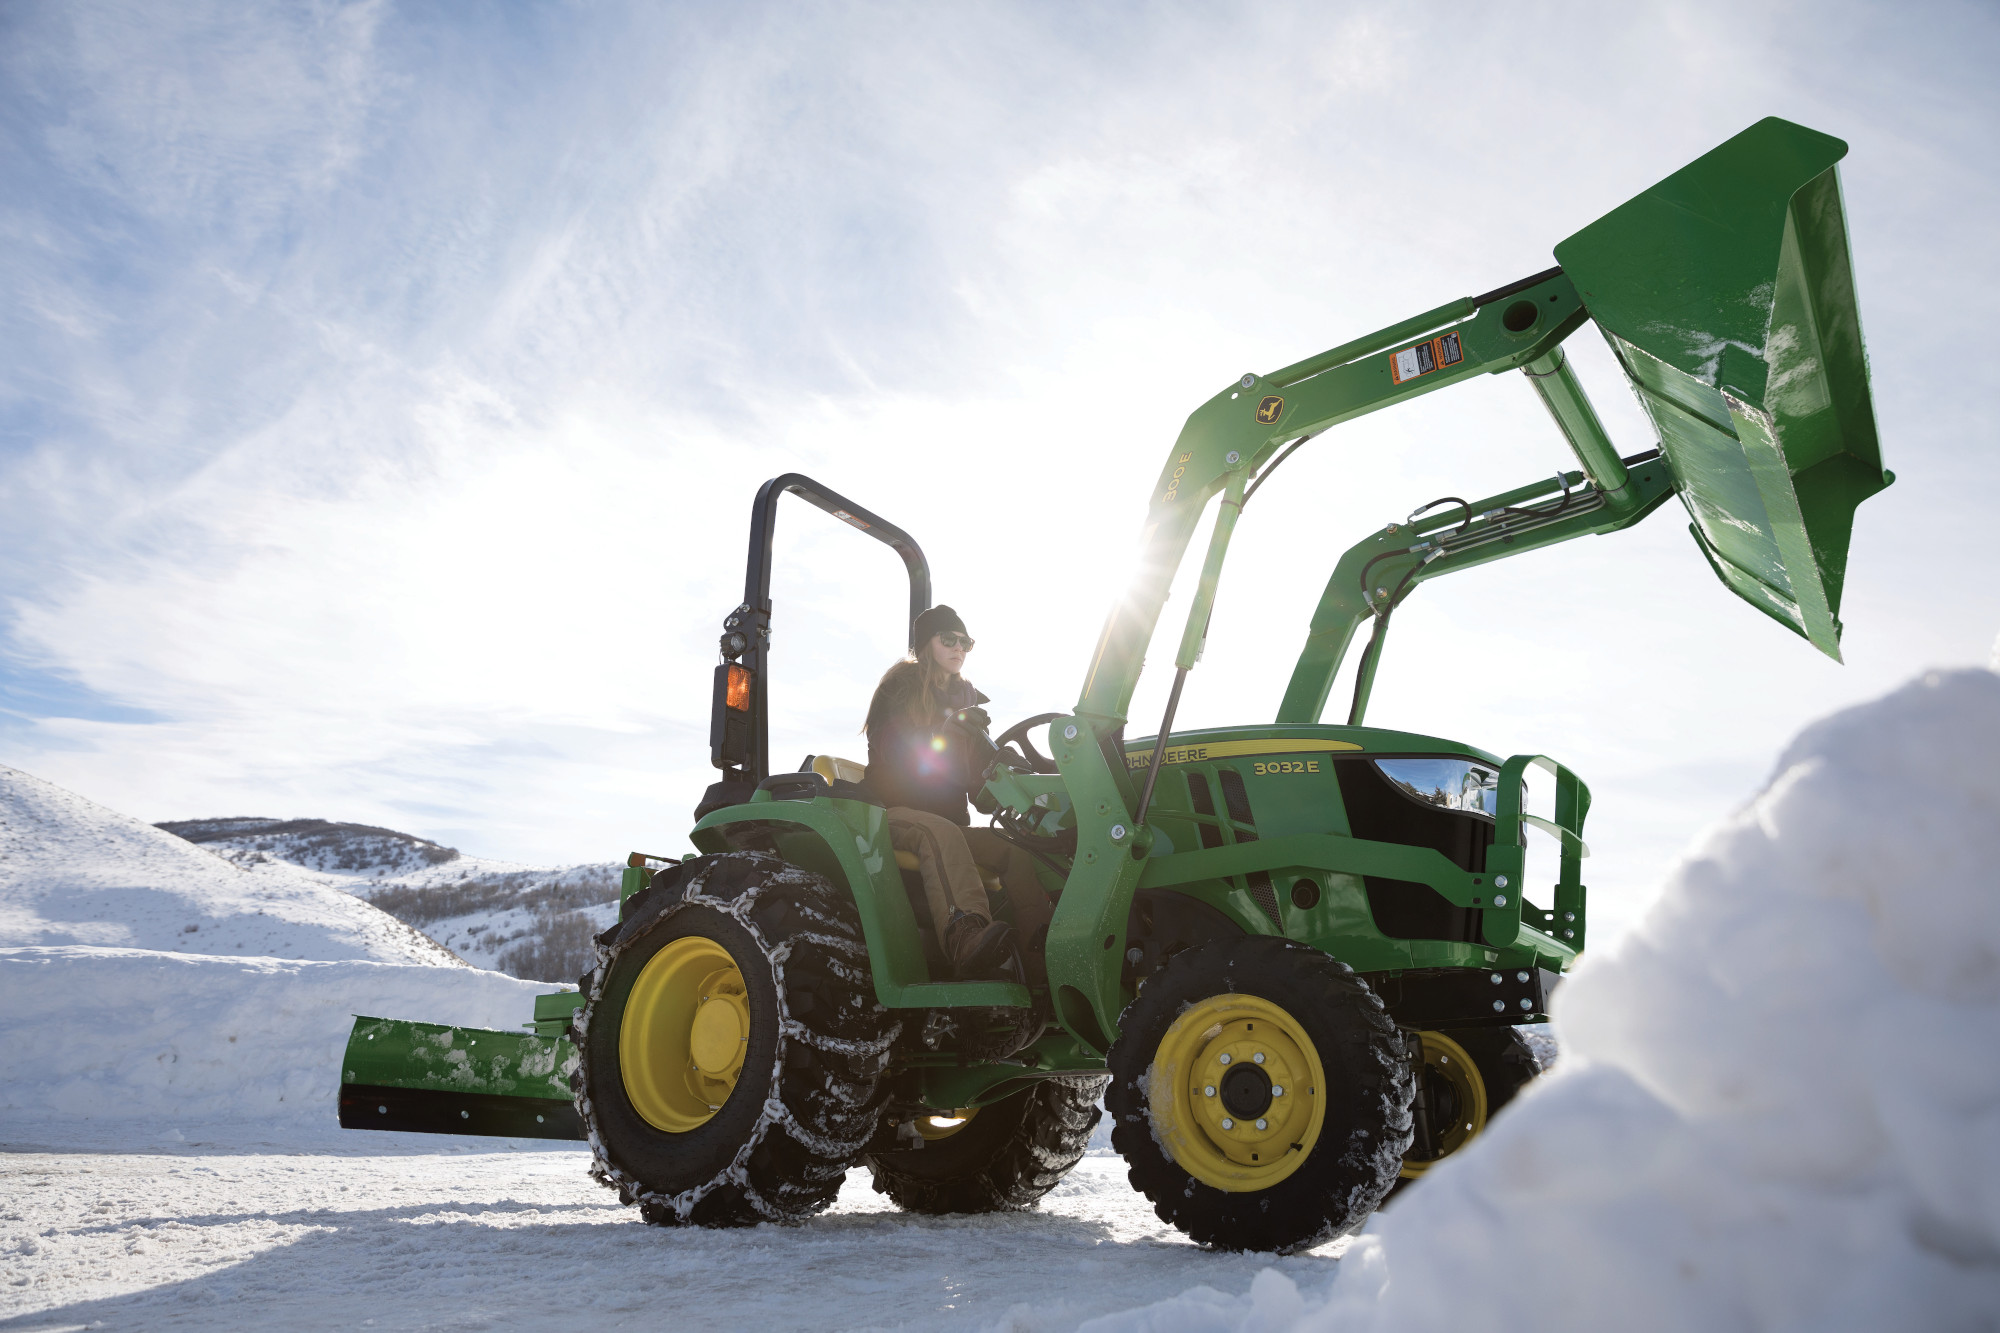 John Deere 3E Compact Tractor moving snow with loader